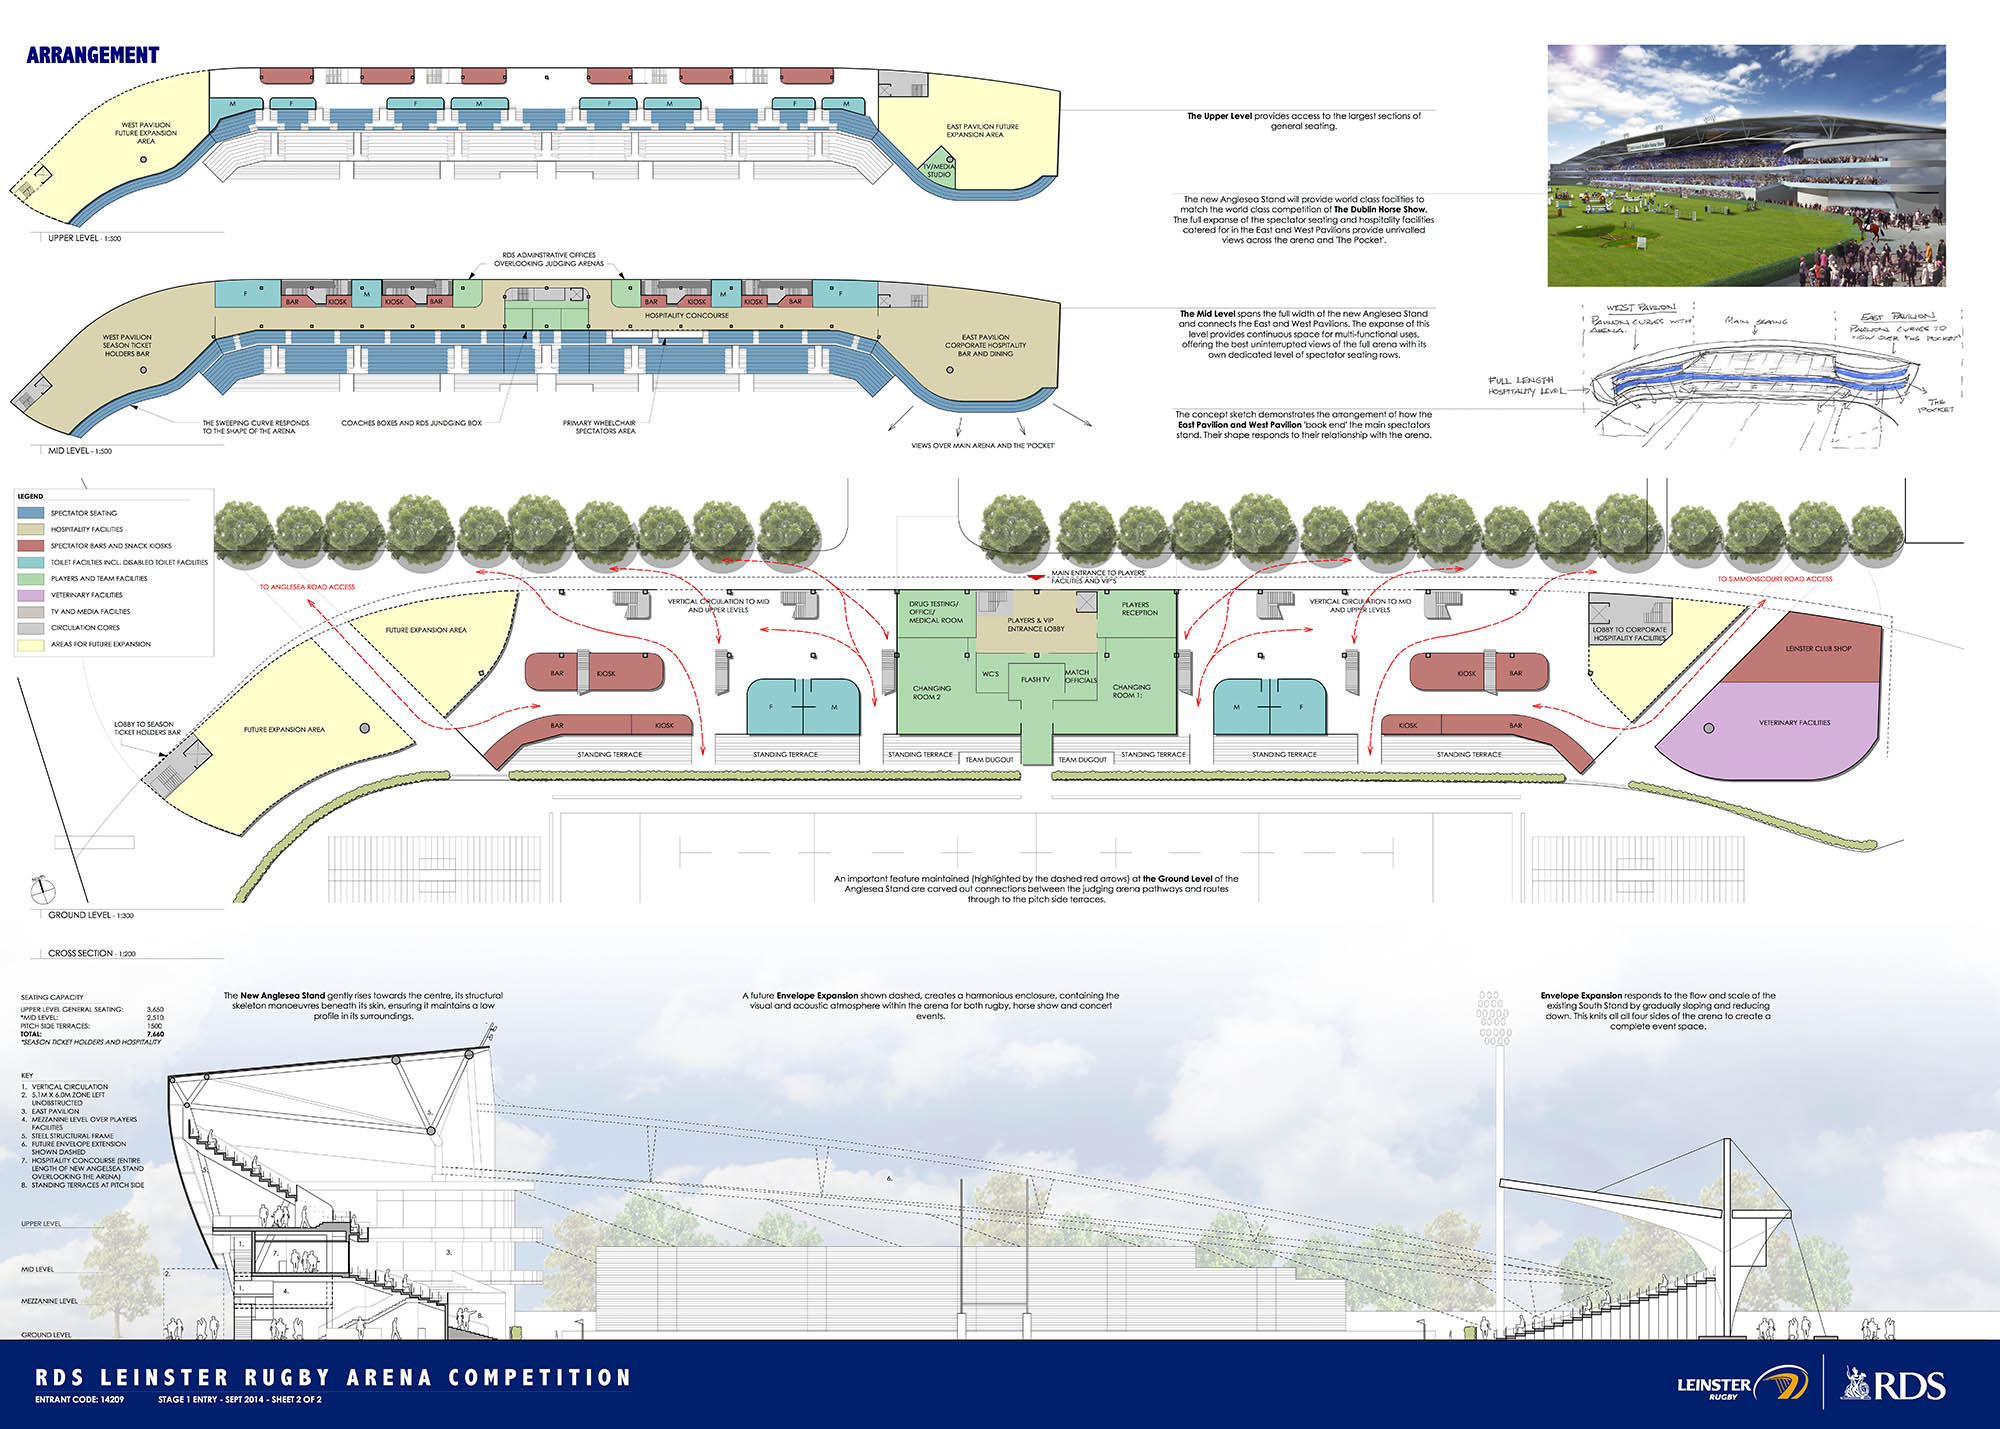 RDS Leinster Rugby Arena Competition Proposal Plans by Hoban Design